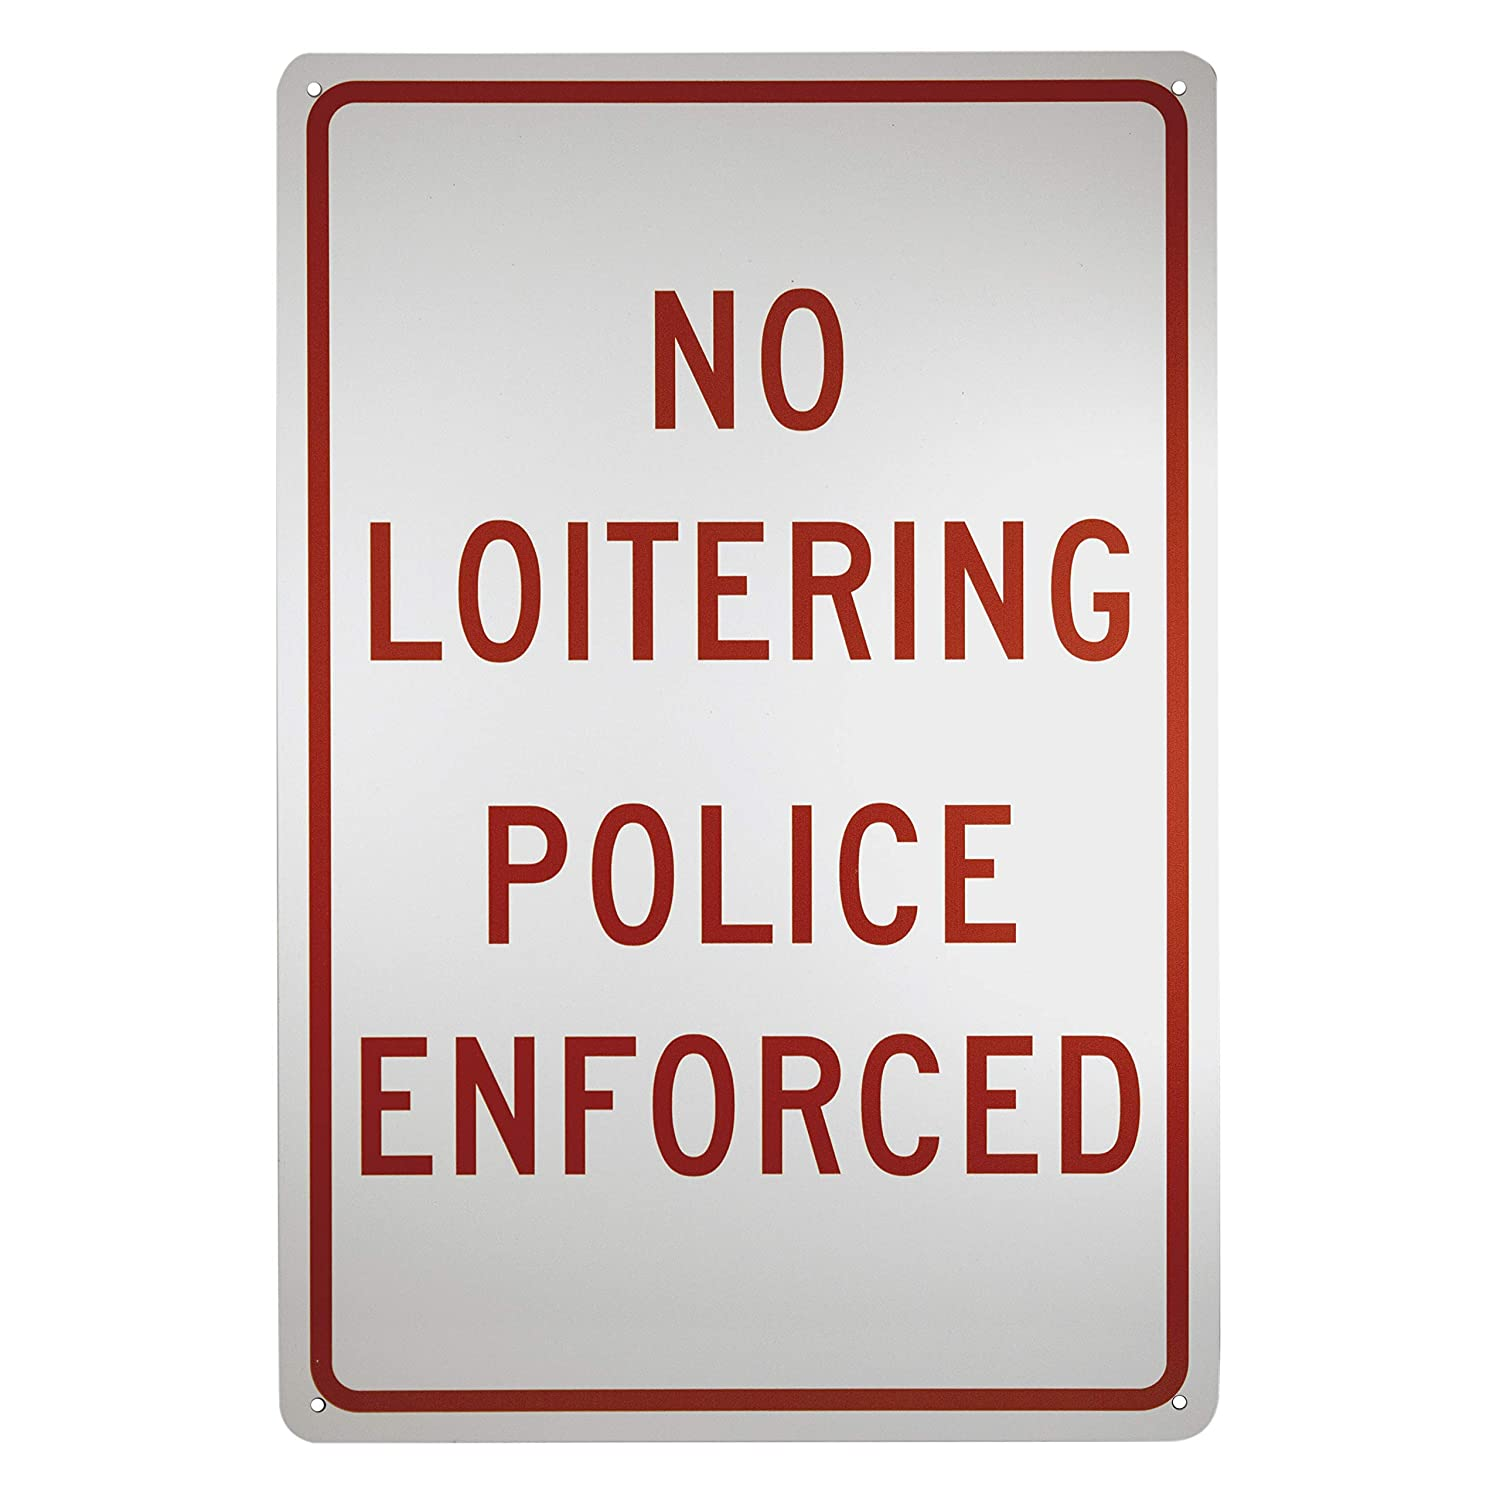 NMC TM63G Traffic Sign, Legend 'NO LOITERING POLICE ENFORCED', 12' Length x 18' Height, 0.040 Aluminum, Red On White Legend NO LOITERING POLICE ENFORCED 12 Length x 18 Height NMCTM63G